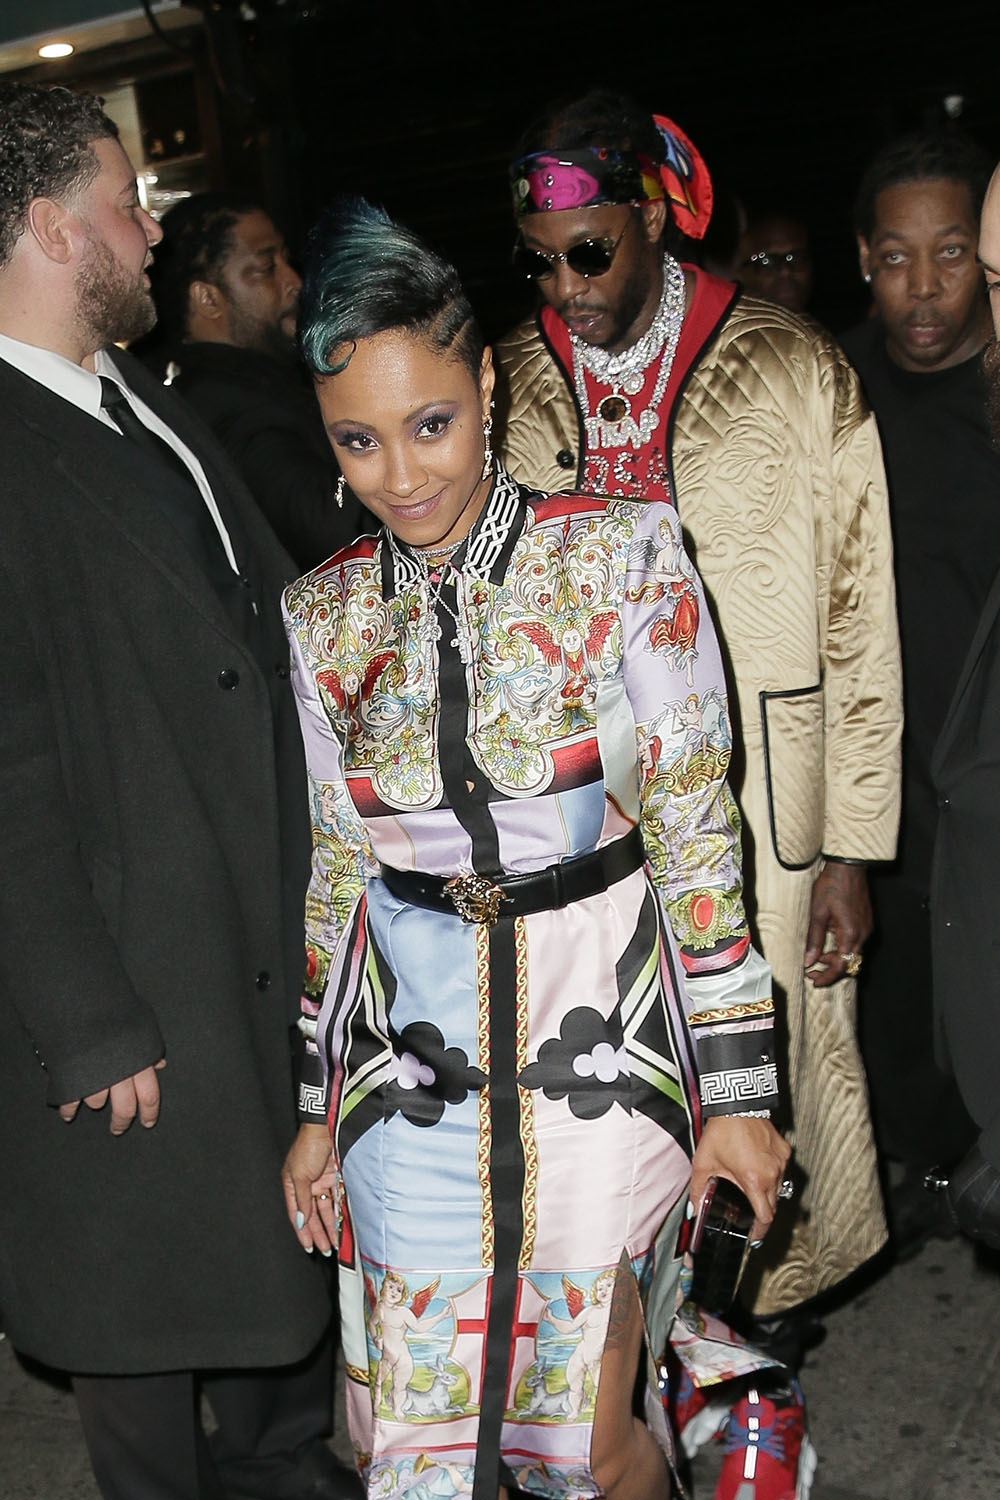 Kesha Ward Amp 2 Chainz Arrive At The Met Gala Afterparty